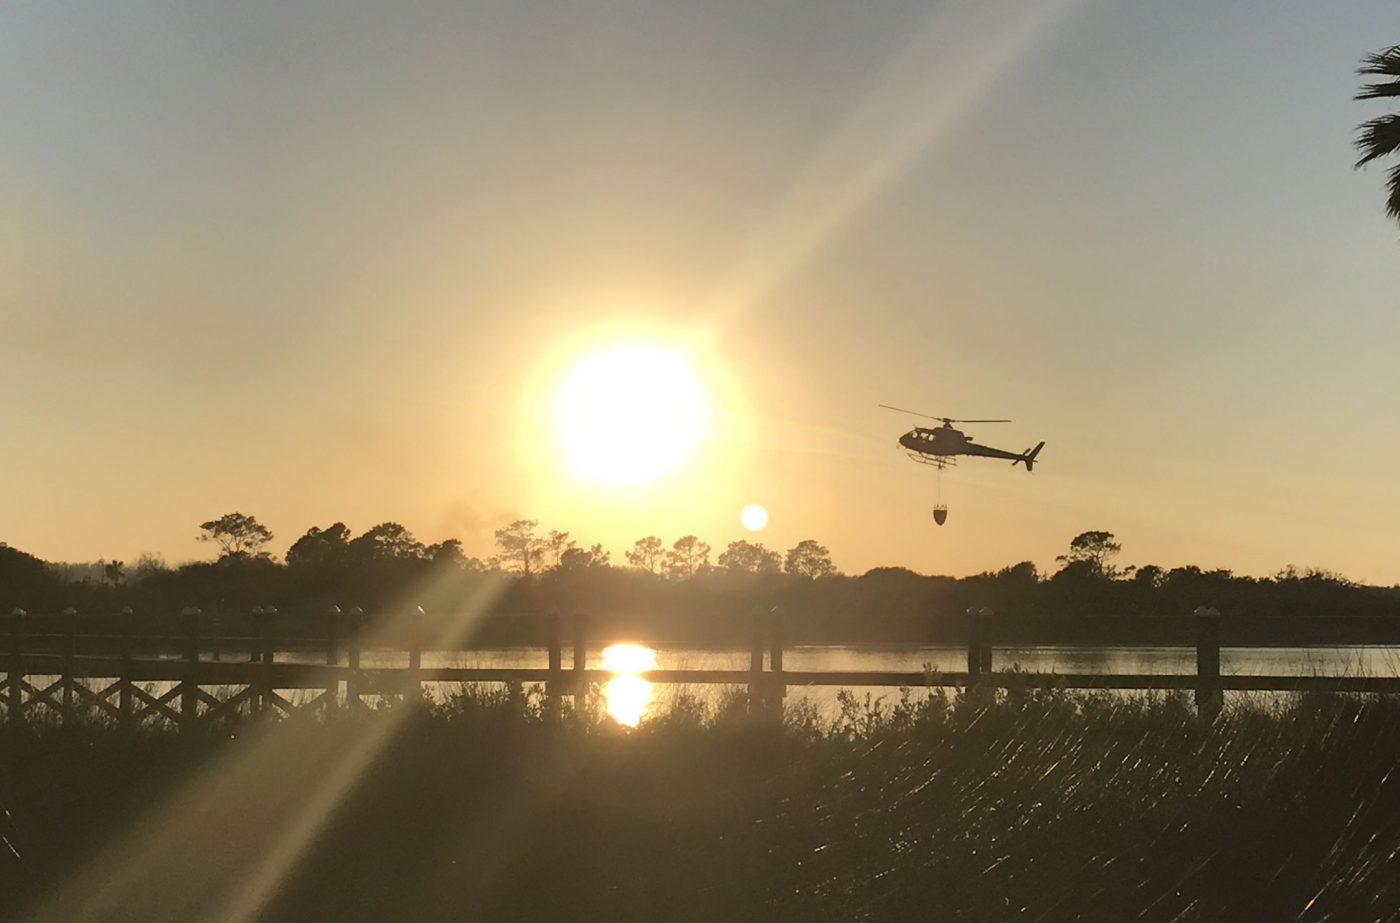 A helicopter near the river in Florida